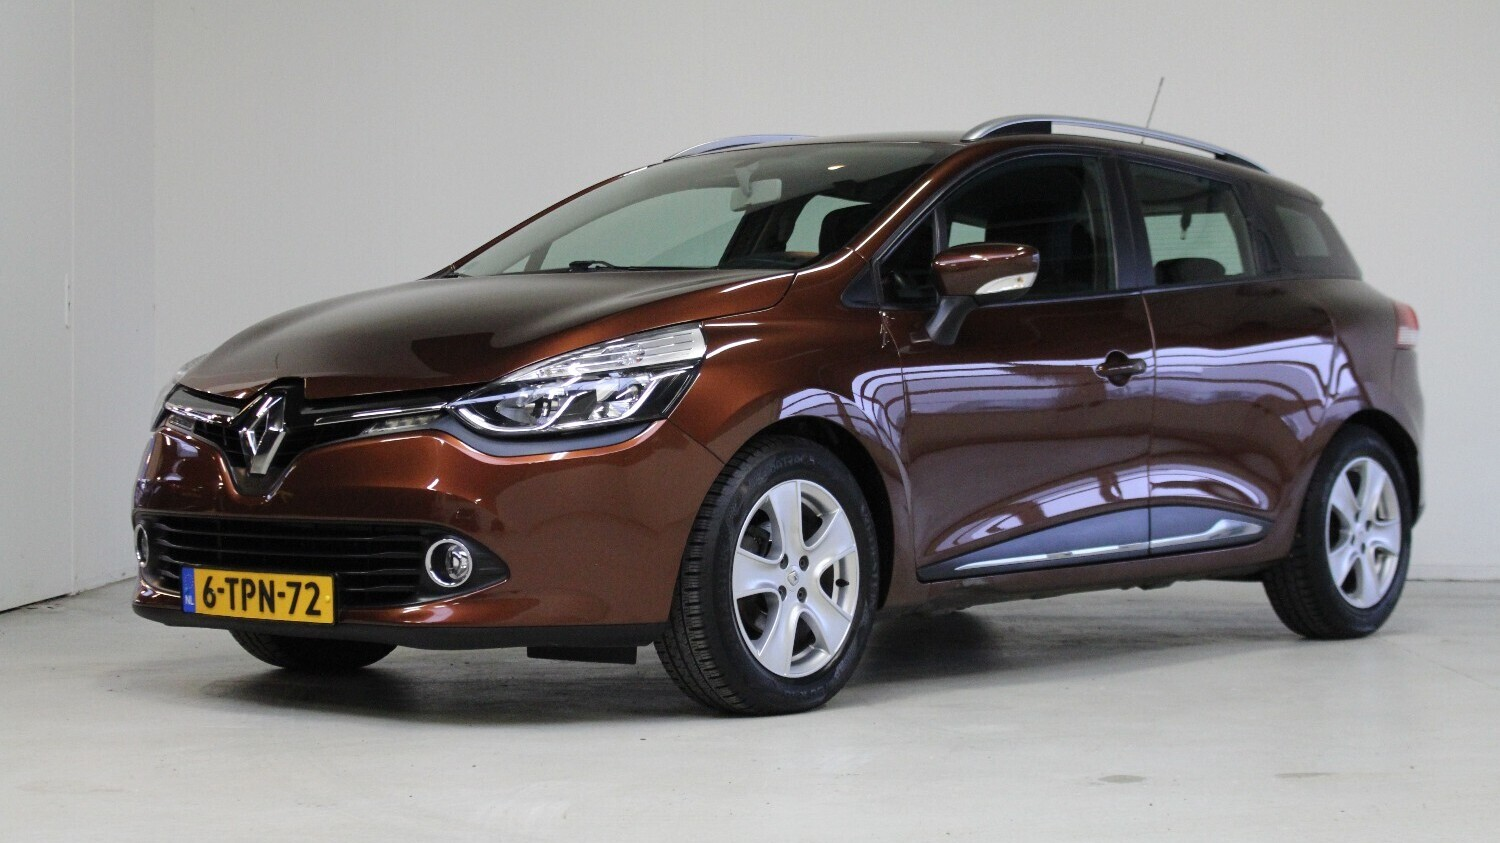 Renault Clio Station 2013 6-TPN-72 1